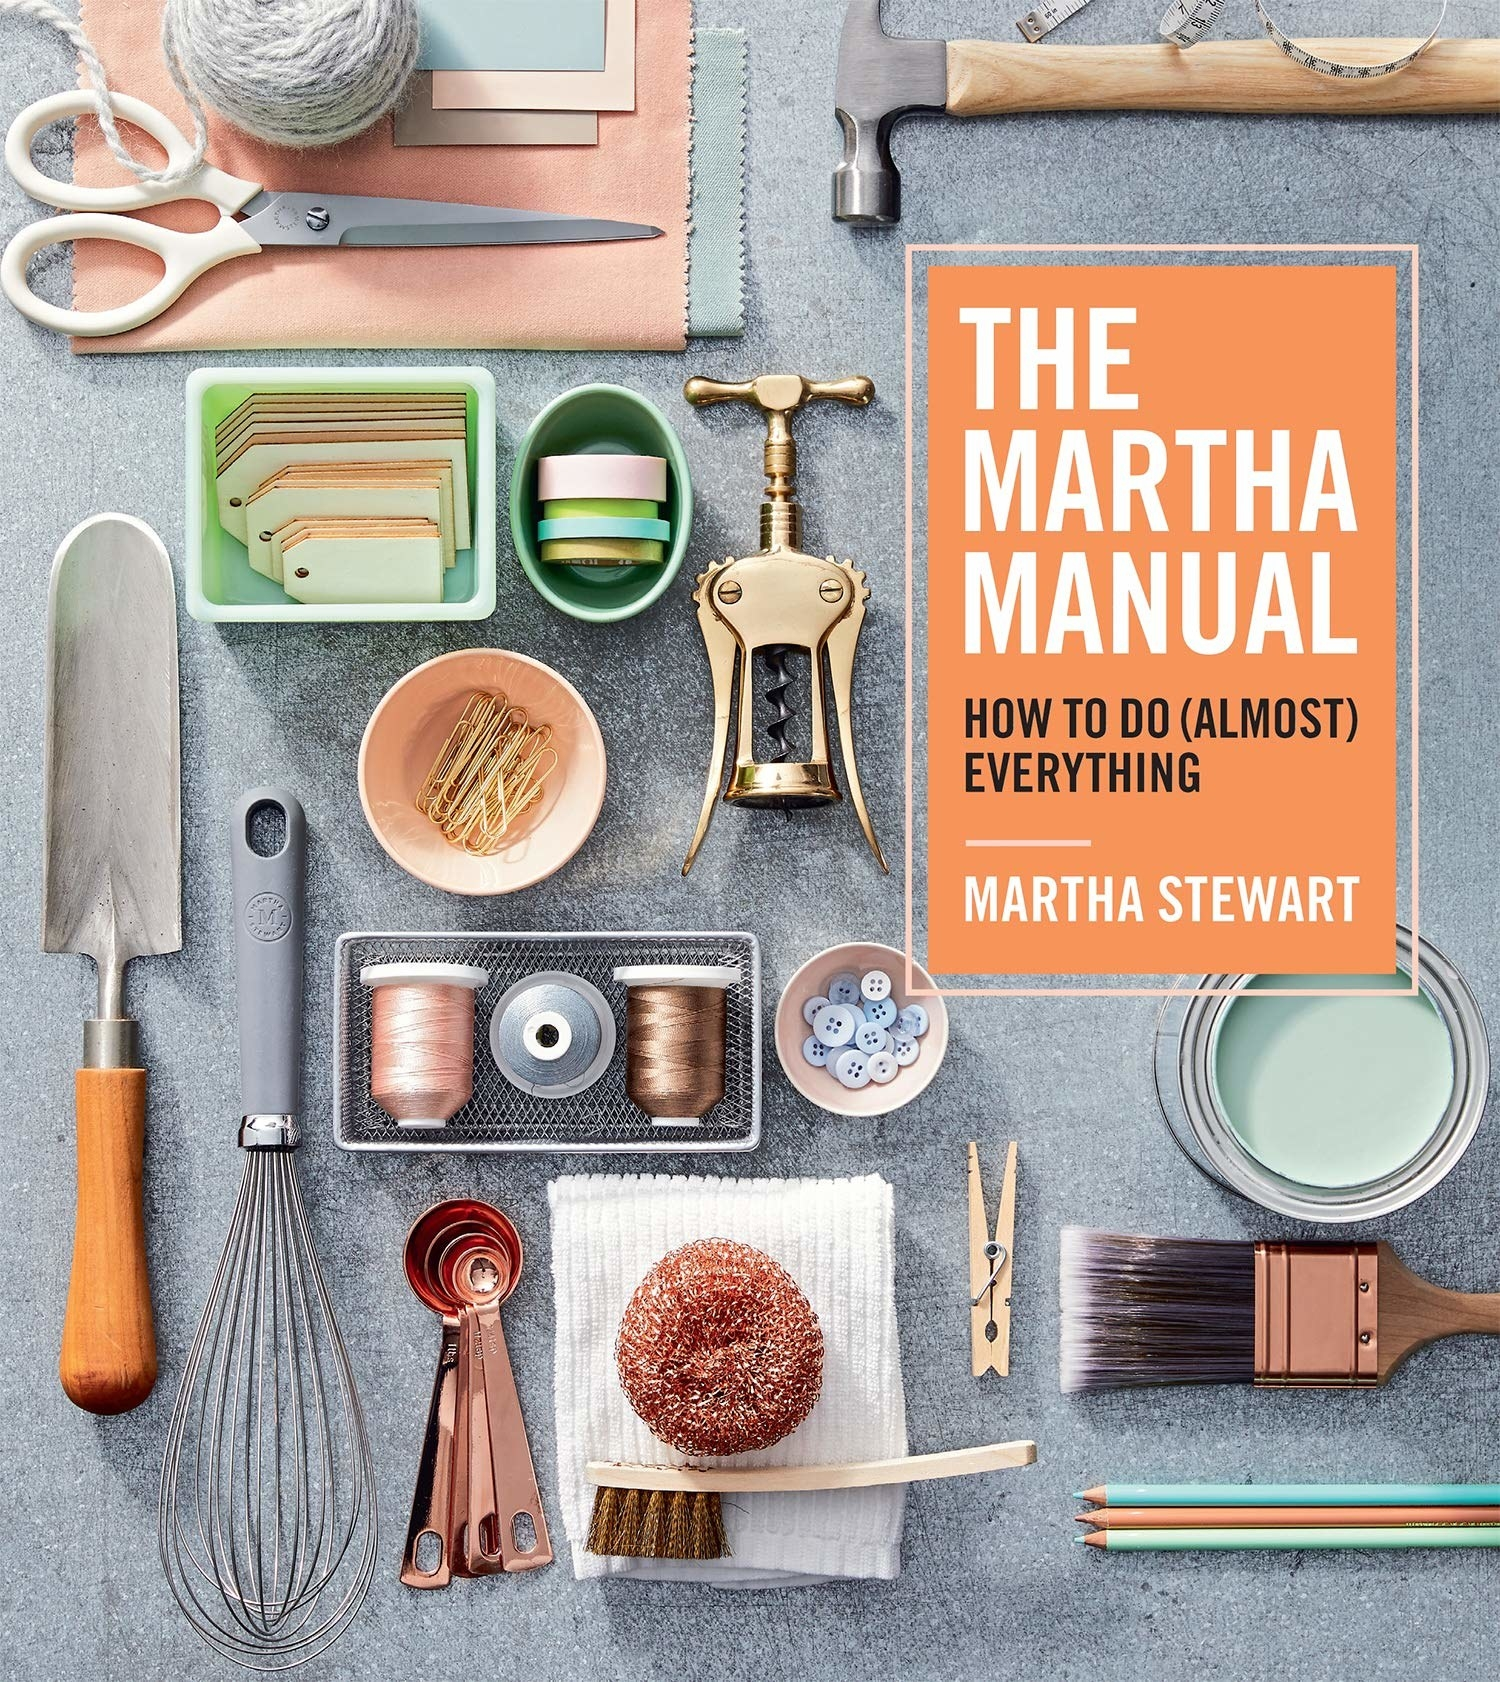 A copy of a craft book called The Martha Manual